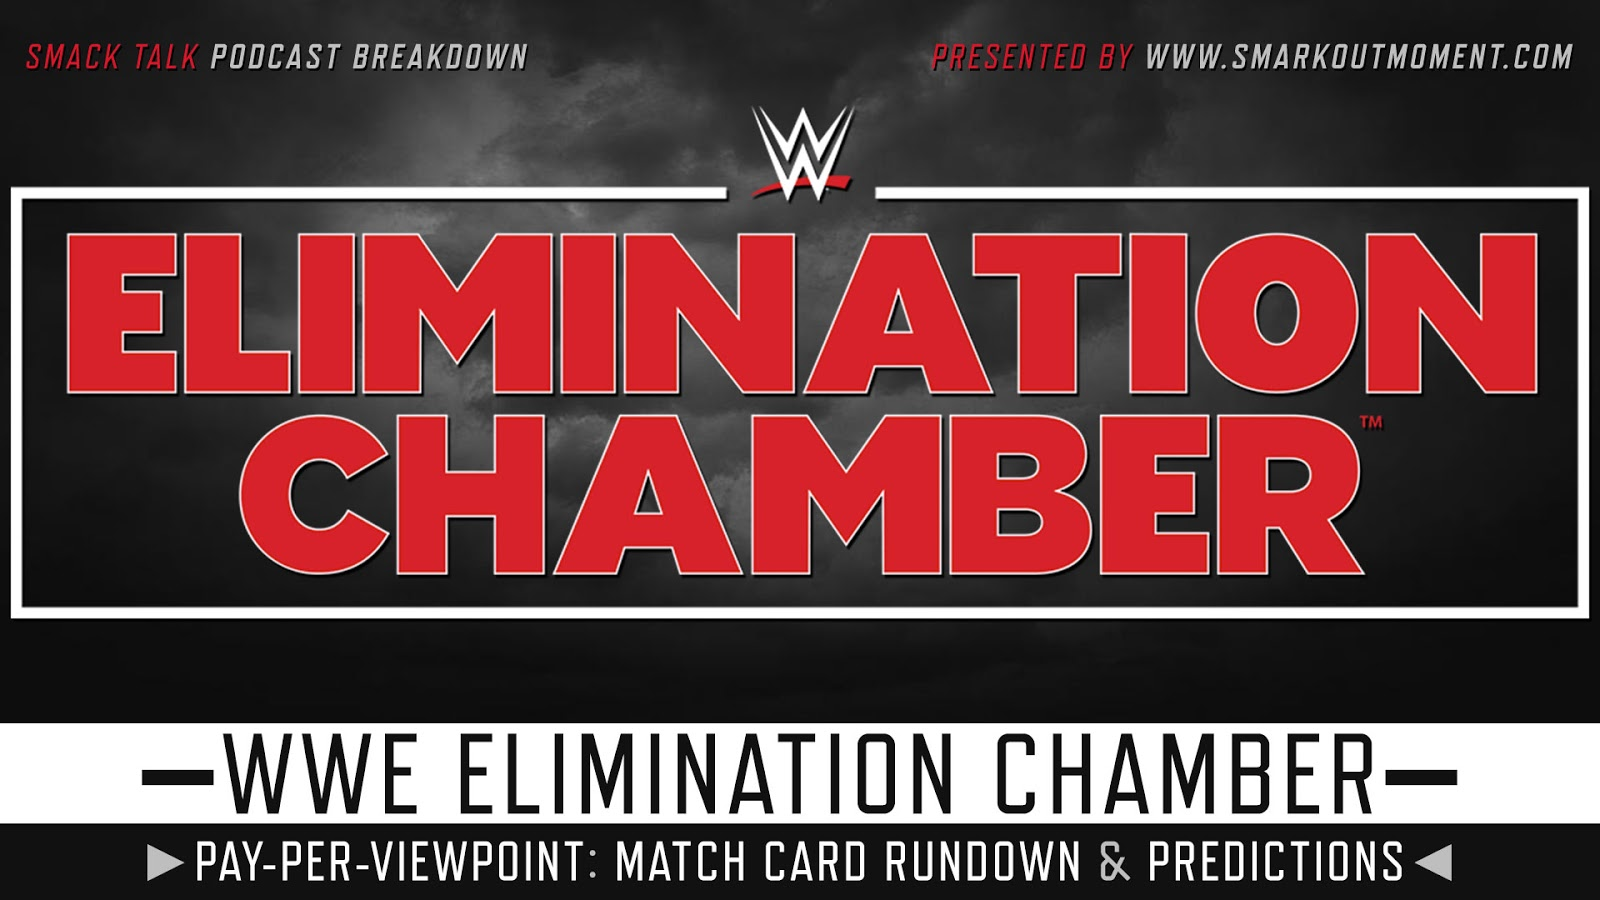 WWE Elimination Chamber 2020 spoilers podcast